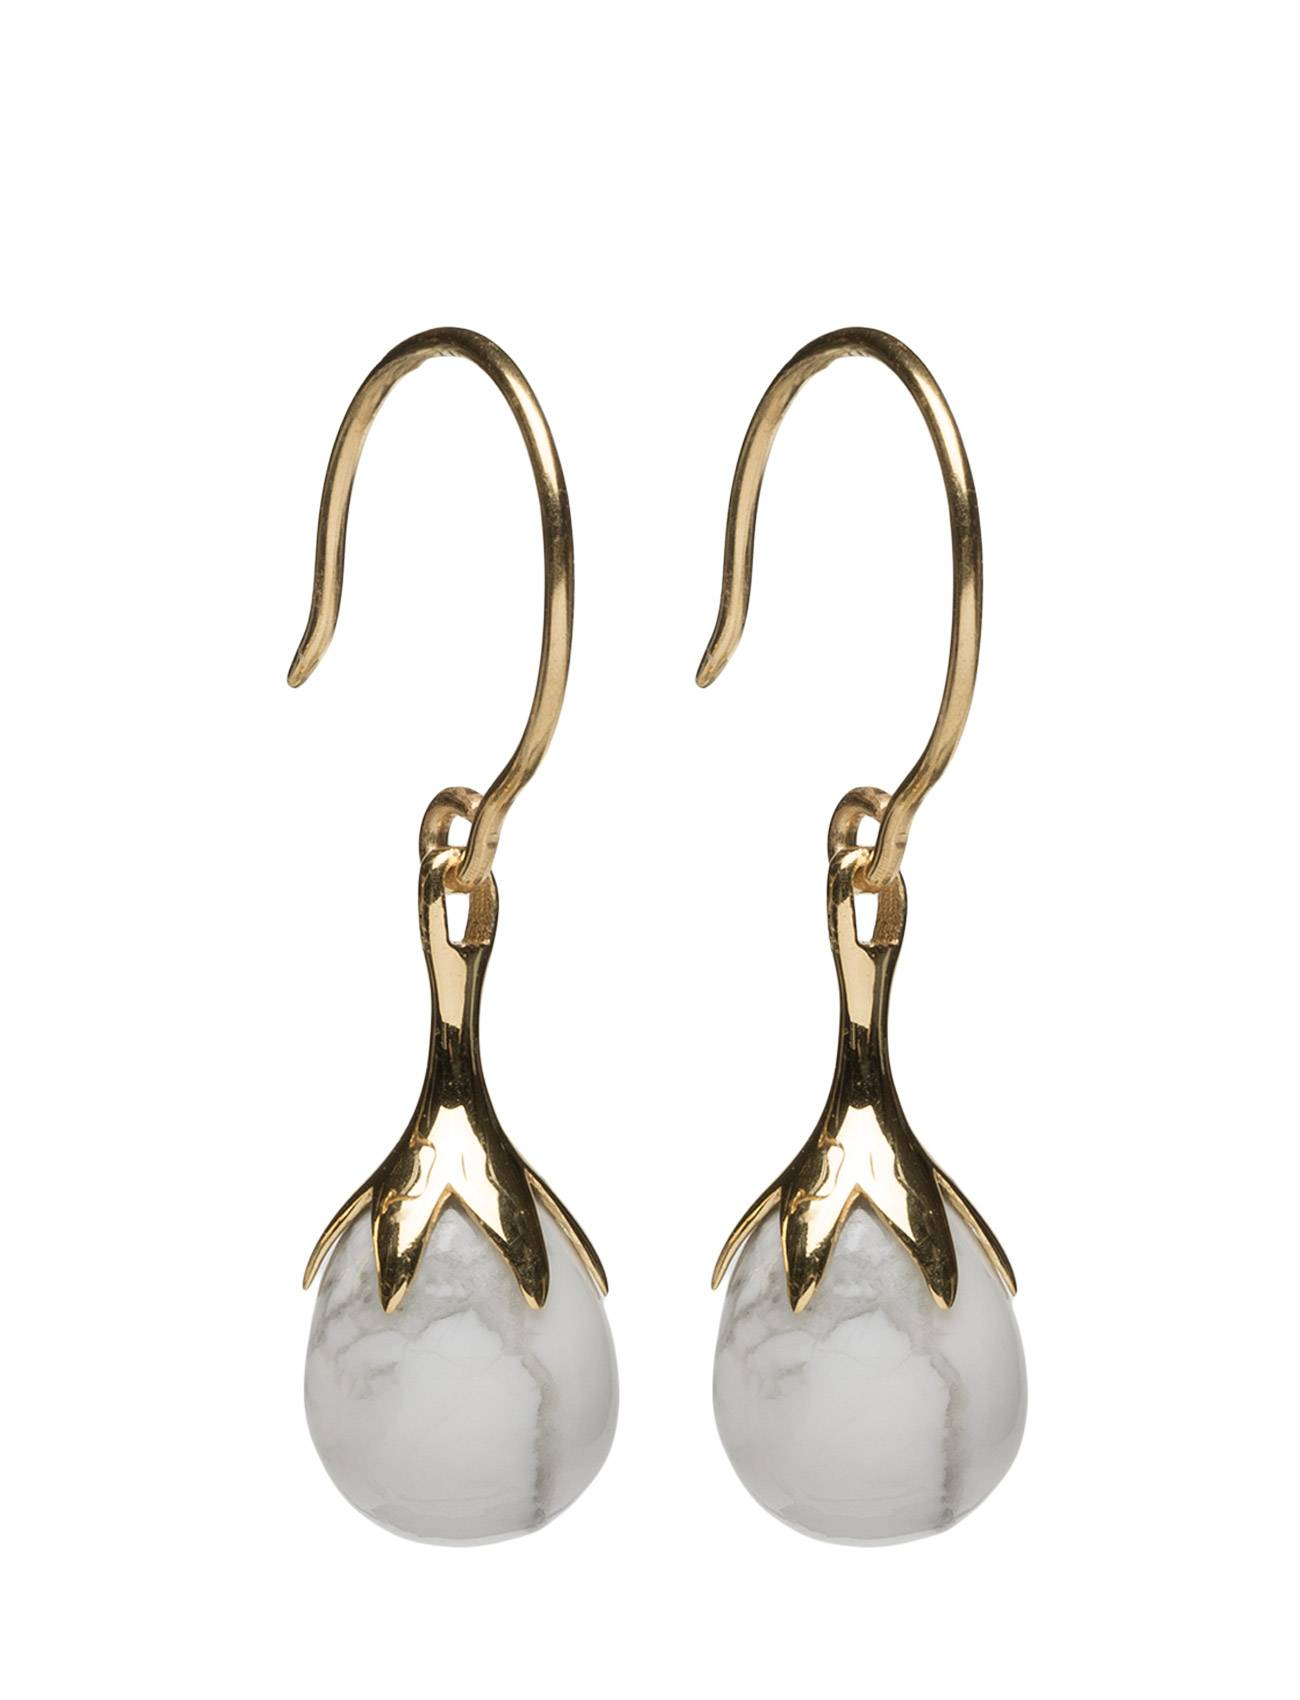 Syster P Dripping Earrings Gold Howalite